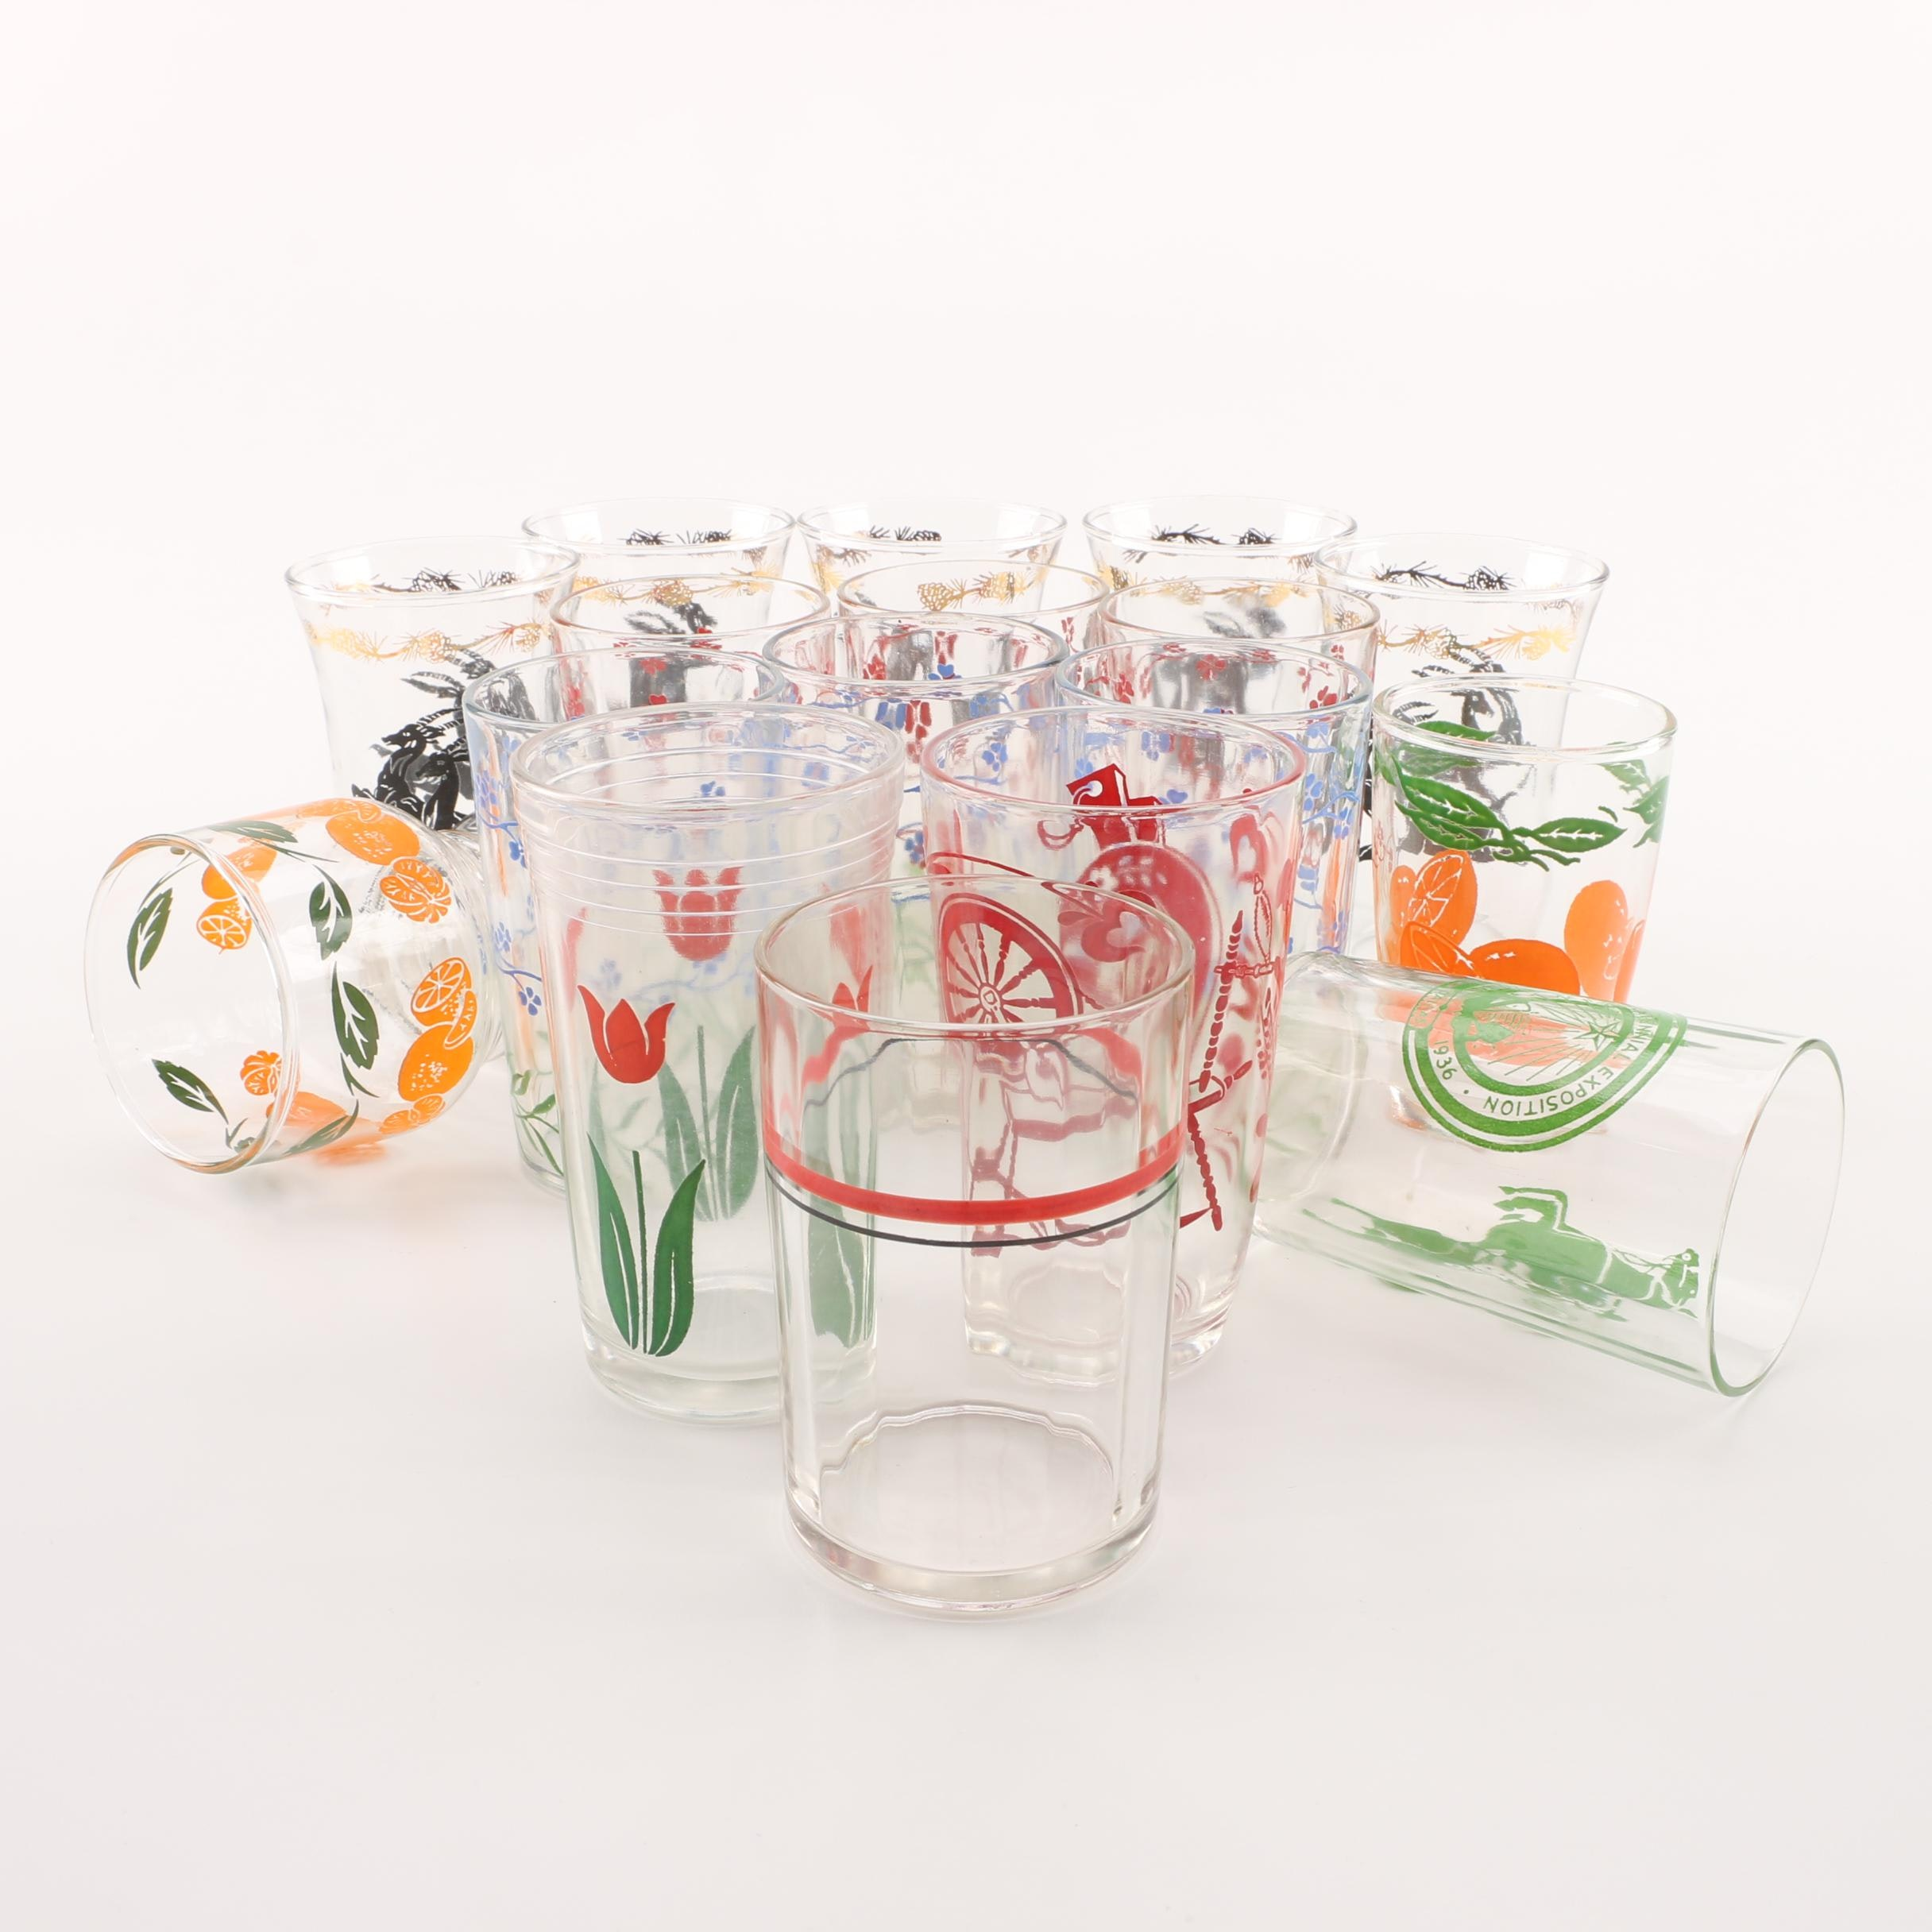 Vintage Swanky Swig Glasses Decorated with Colorful Fruit, Flowers and Deer